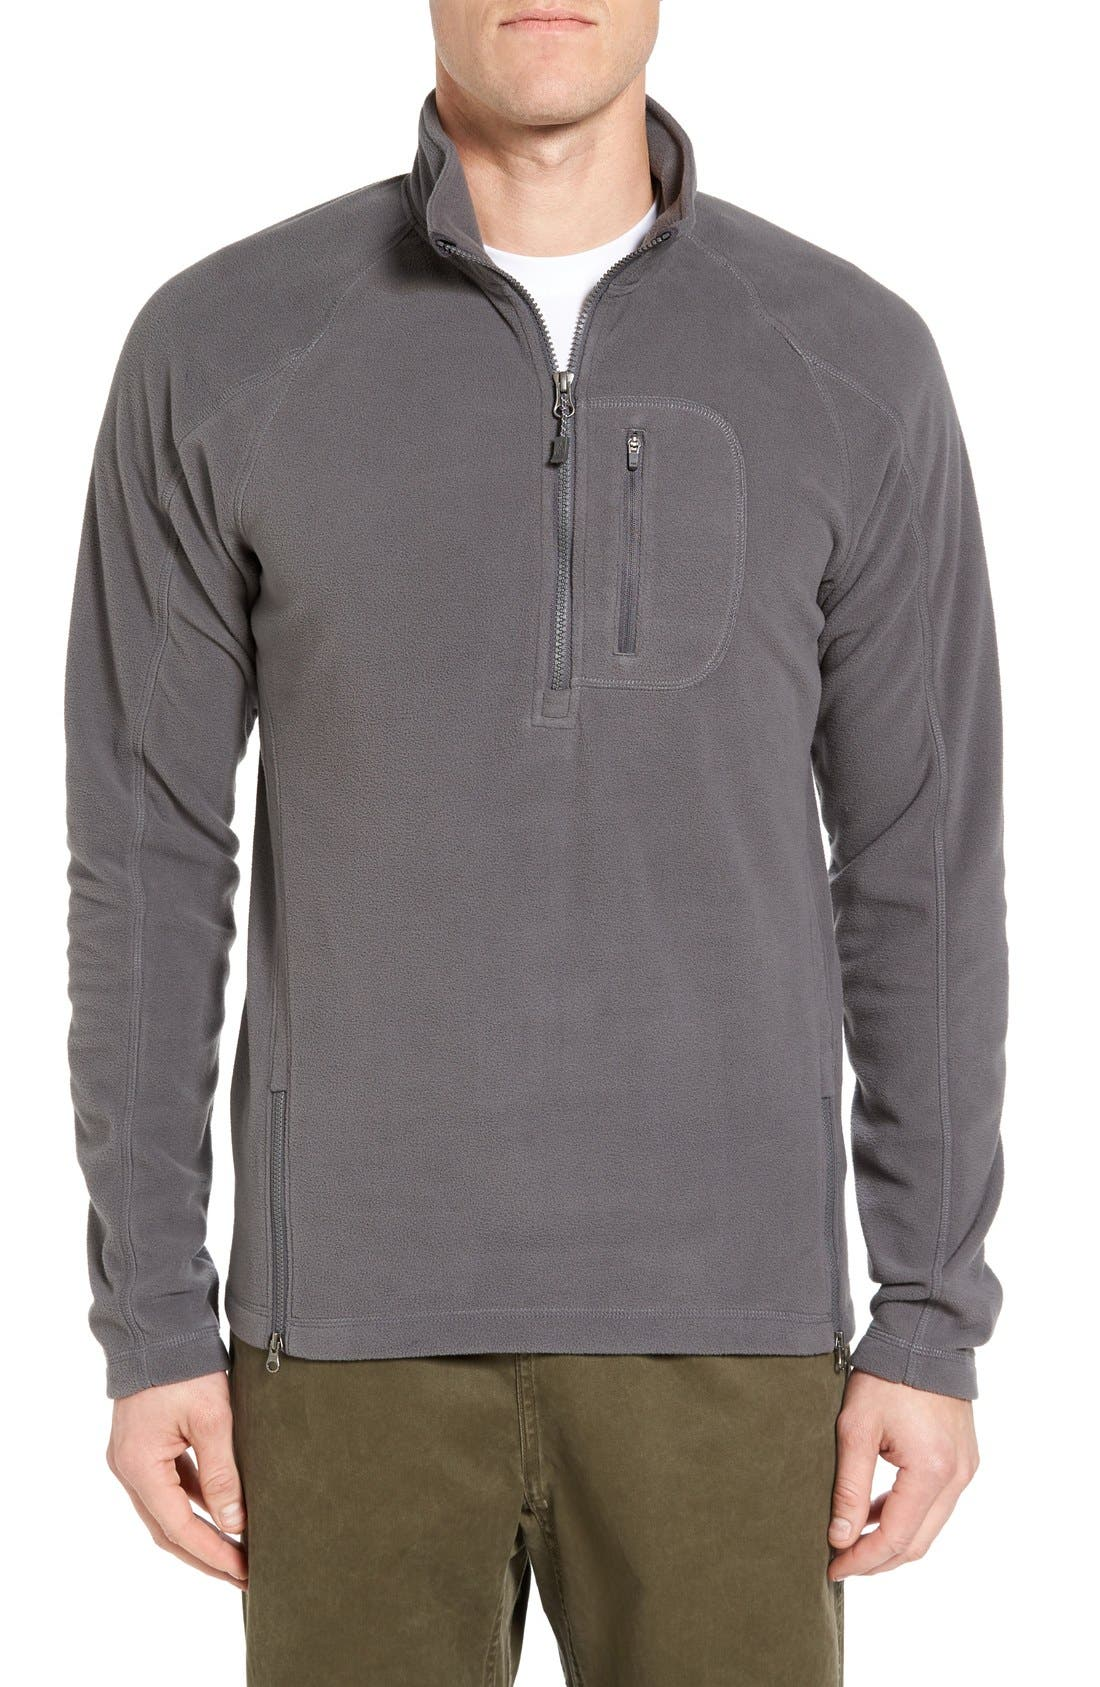 GRAMICCI Utility Quarter Zip Fleece Sweater